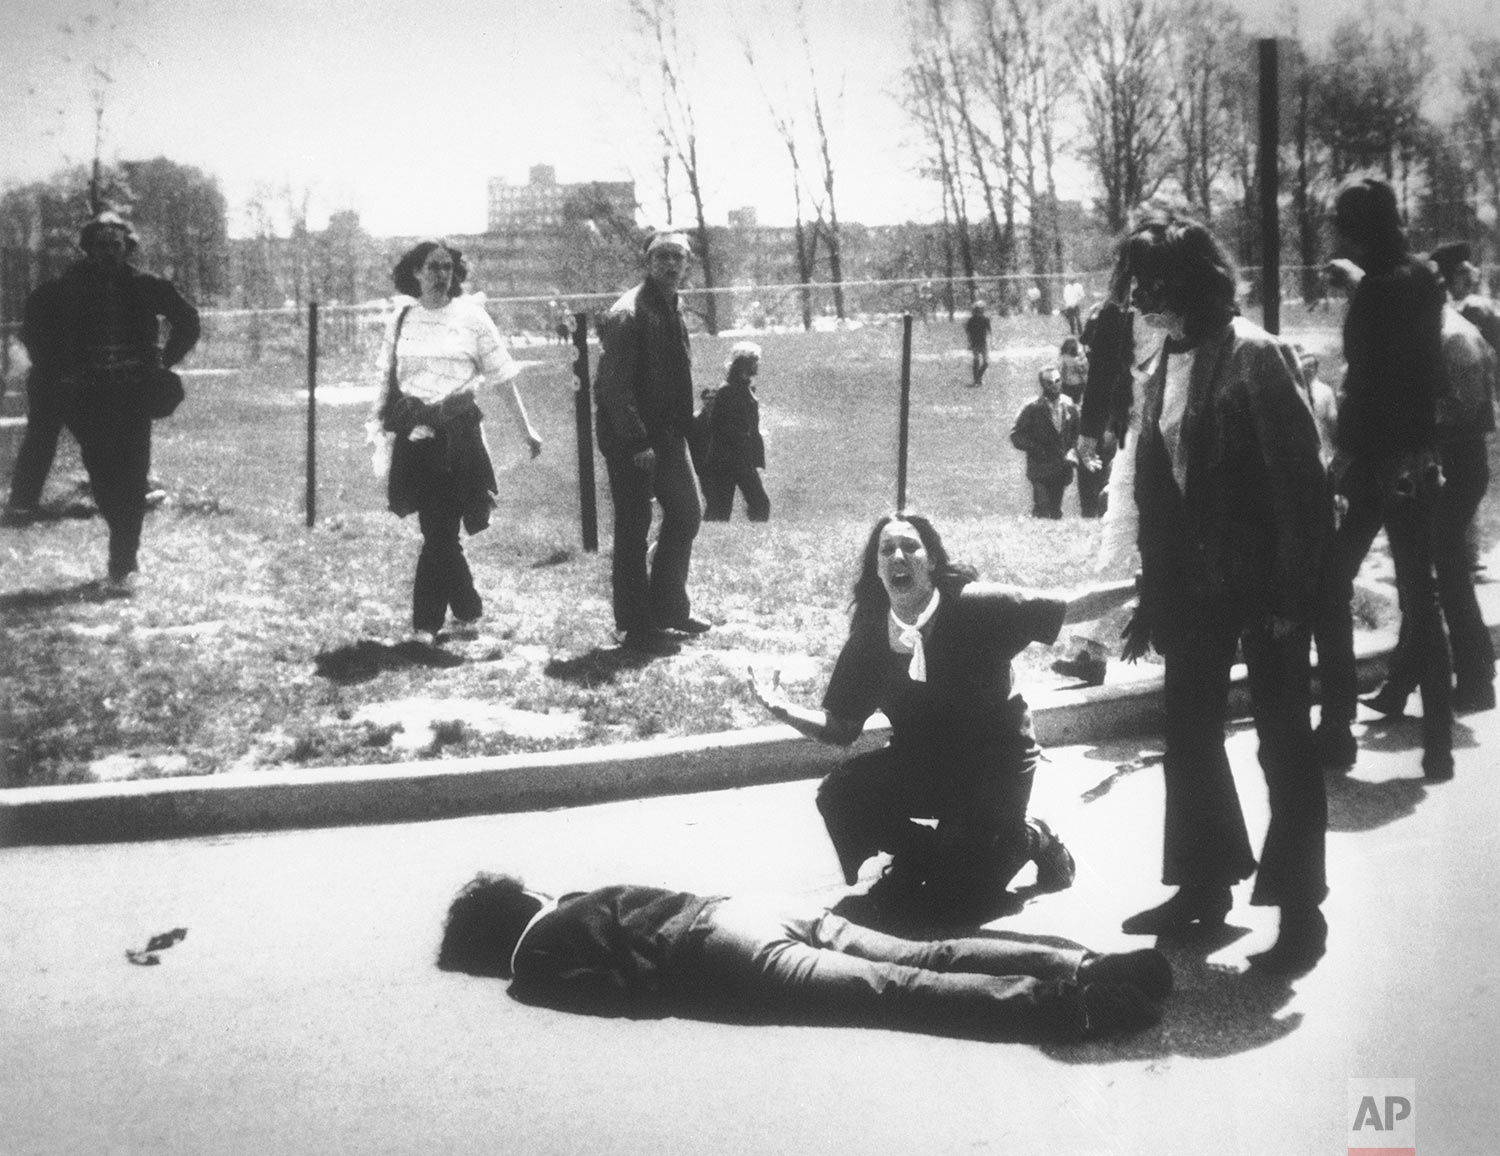 Mary Ann Vecchio cries out as she kneels next to the body of student Jeffrey Miller lying face down on the campus of Kent State University, Kent, Ohio, May 4, 1970. National Guardsmen killed four when they fired into a crowd of demonstrators protesting the U.S. bombing of Cambodia. (AP Photo/John Filo)